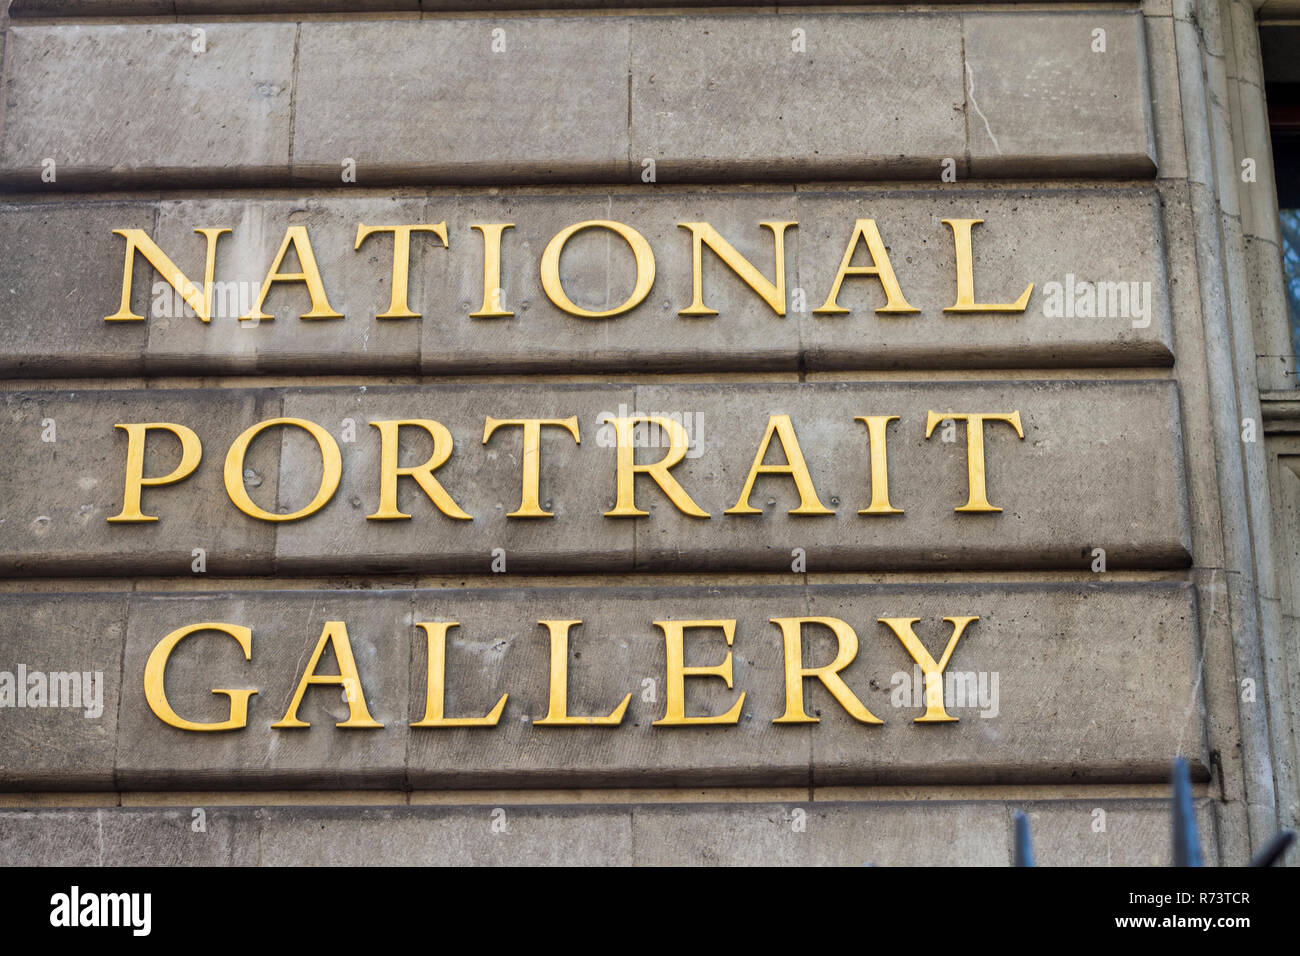 National Portrait Gallery, gold sign, brass sign, sculptures pieces of art tourist attraction, things to do London UK britain british - Stock Image